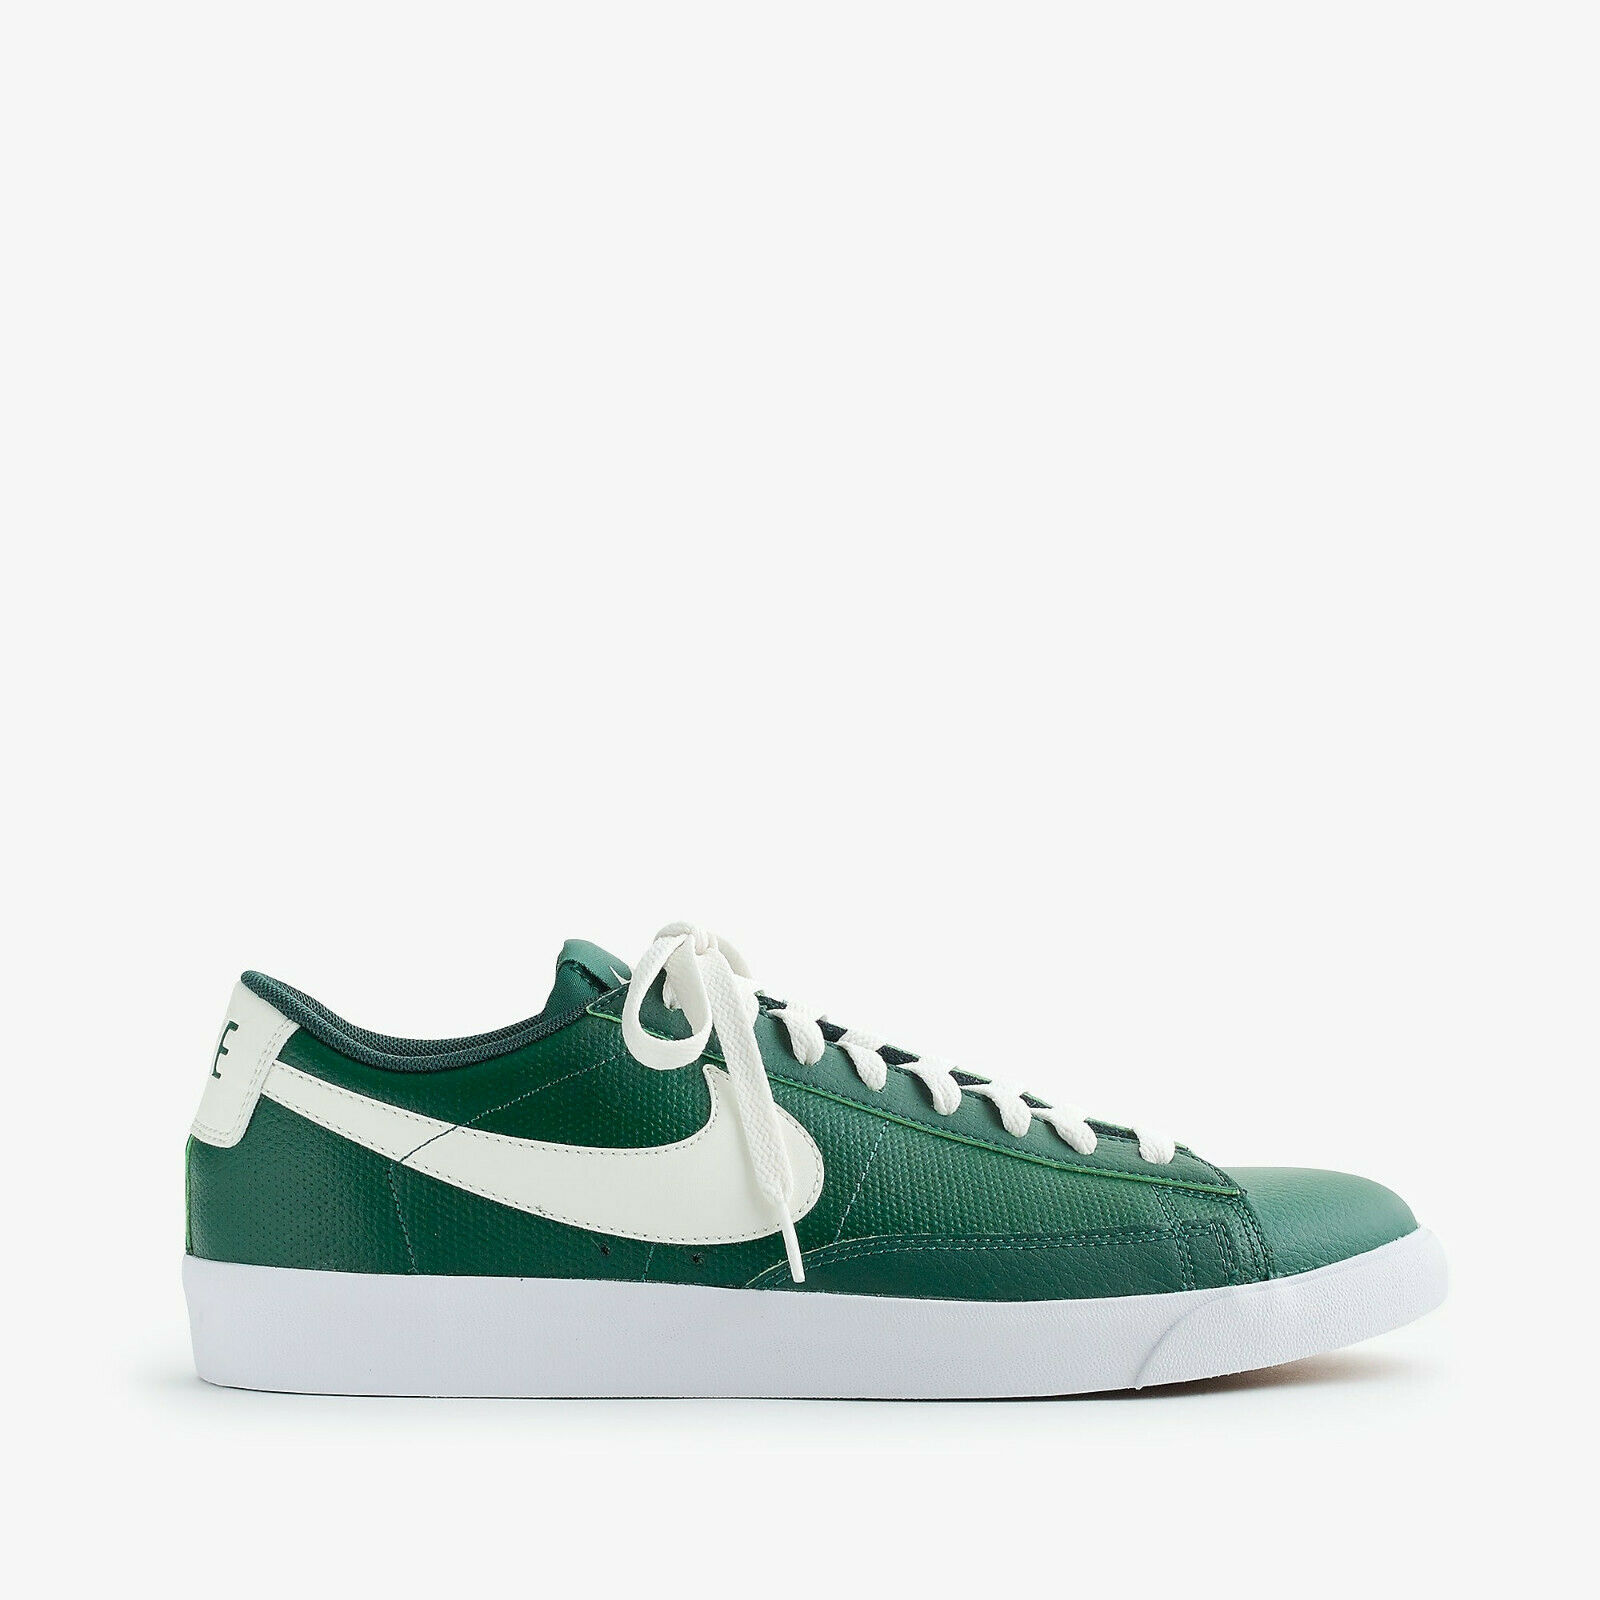 Nike Blazer for J. Crew Men's Classic Sneakers shoes Green White NEW US 12